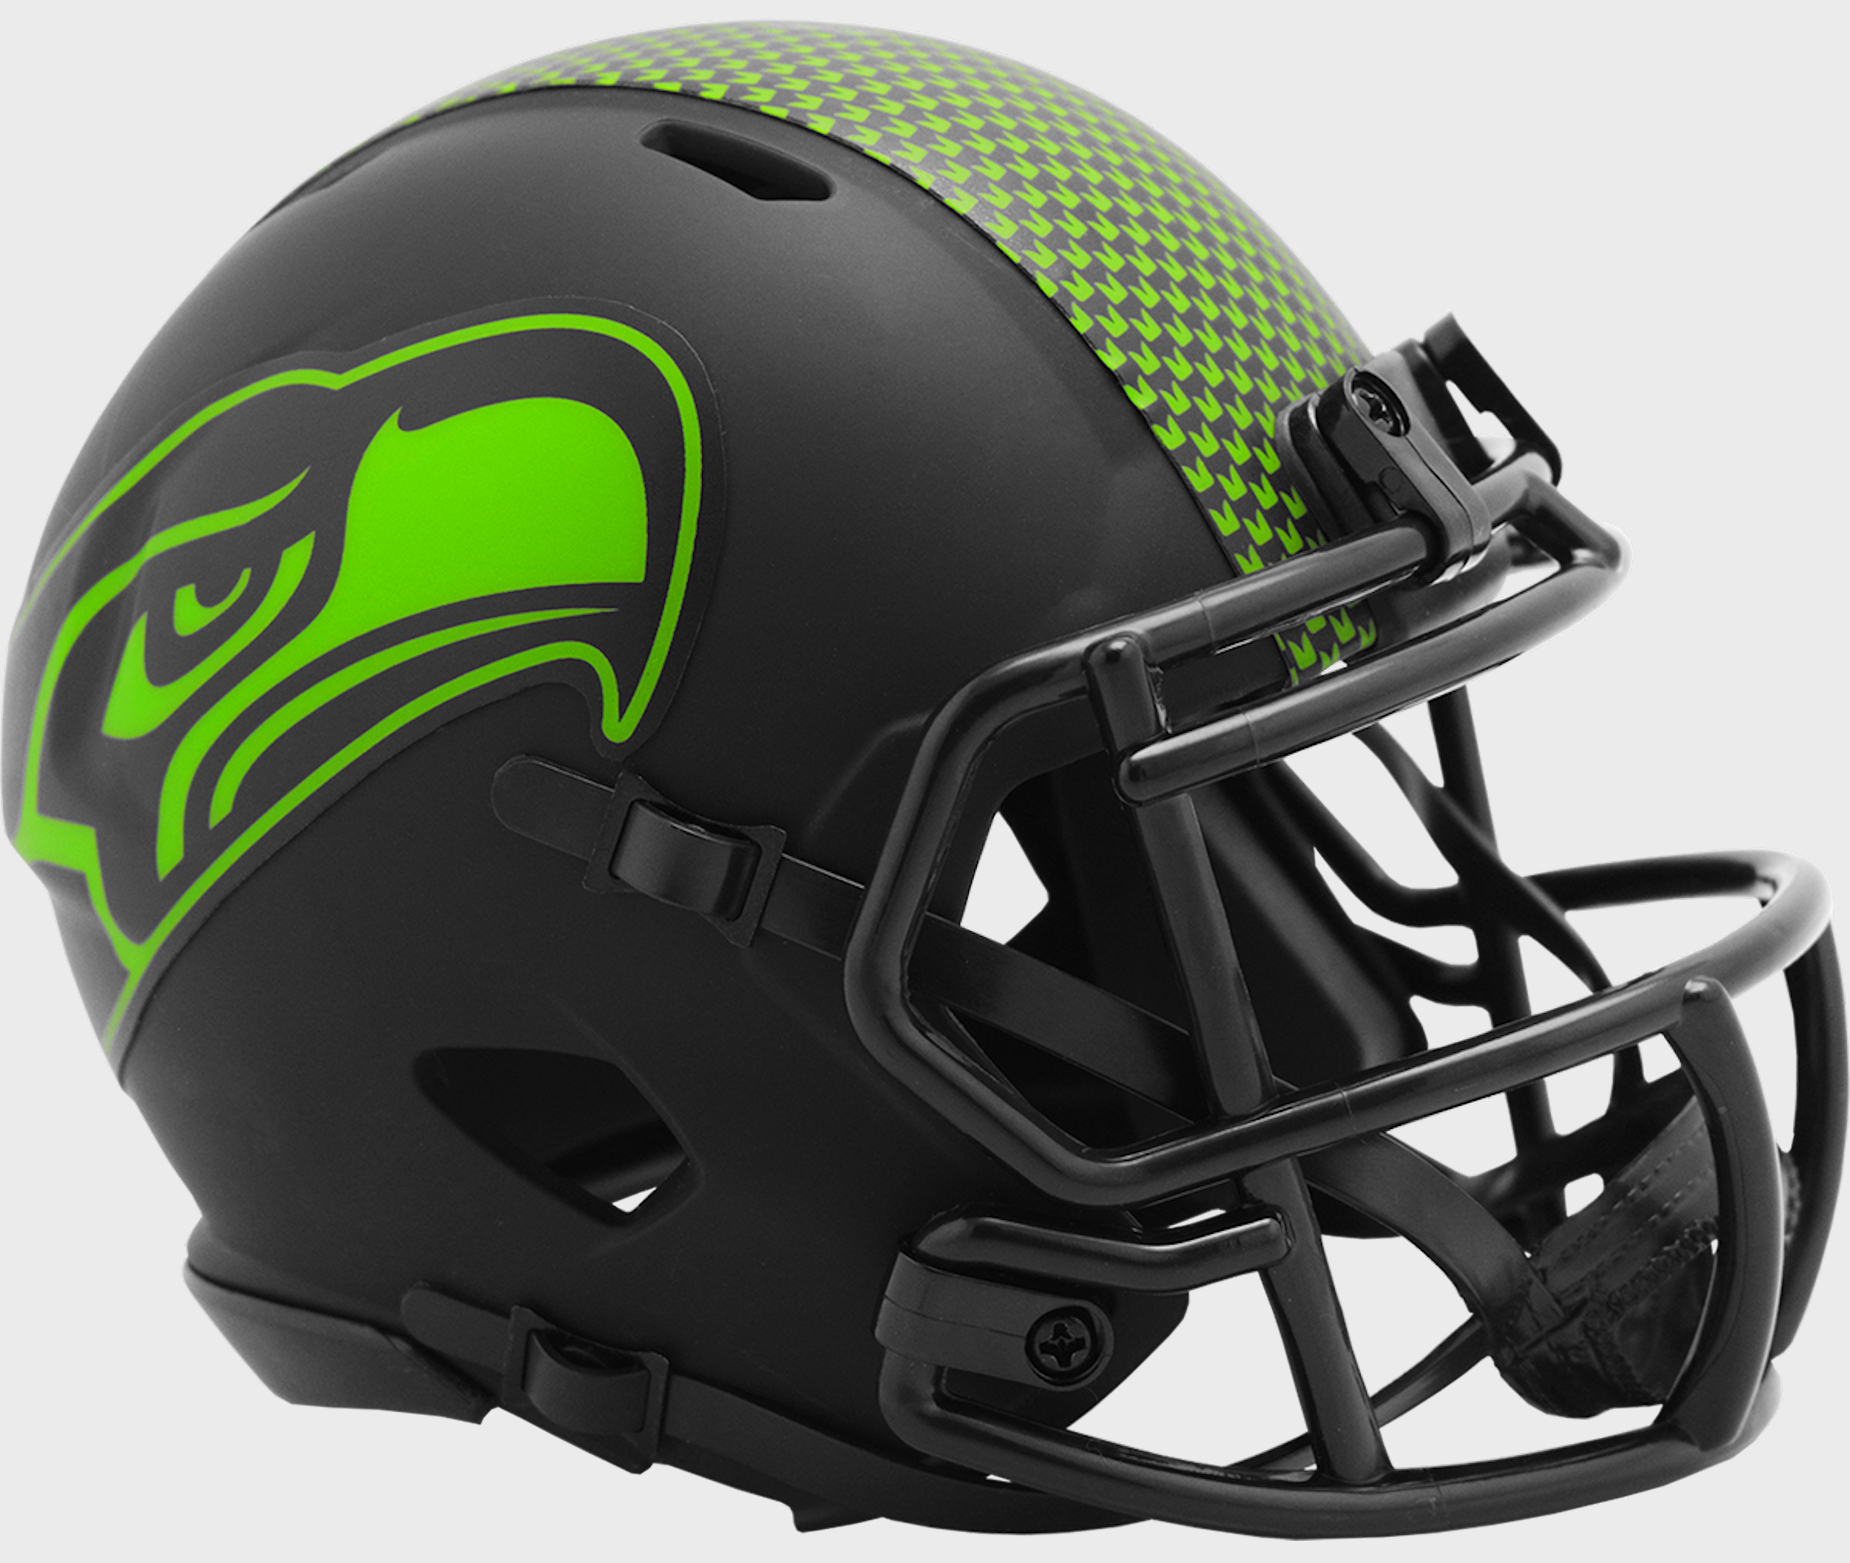 Seattle Seahawks NFL Mini Speed Football Helmet <B>ECLIPSE</B>